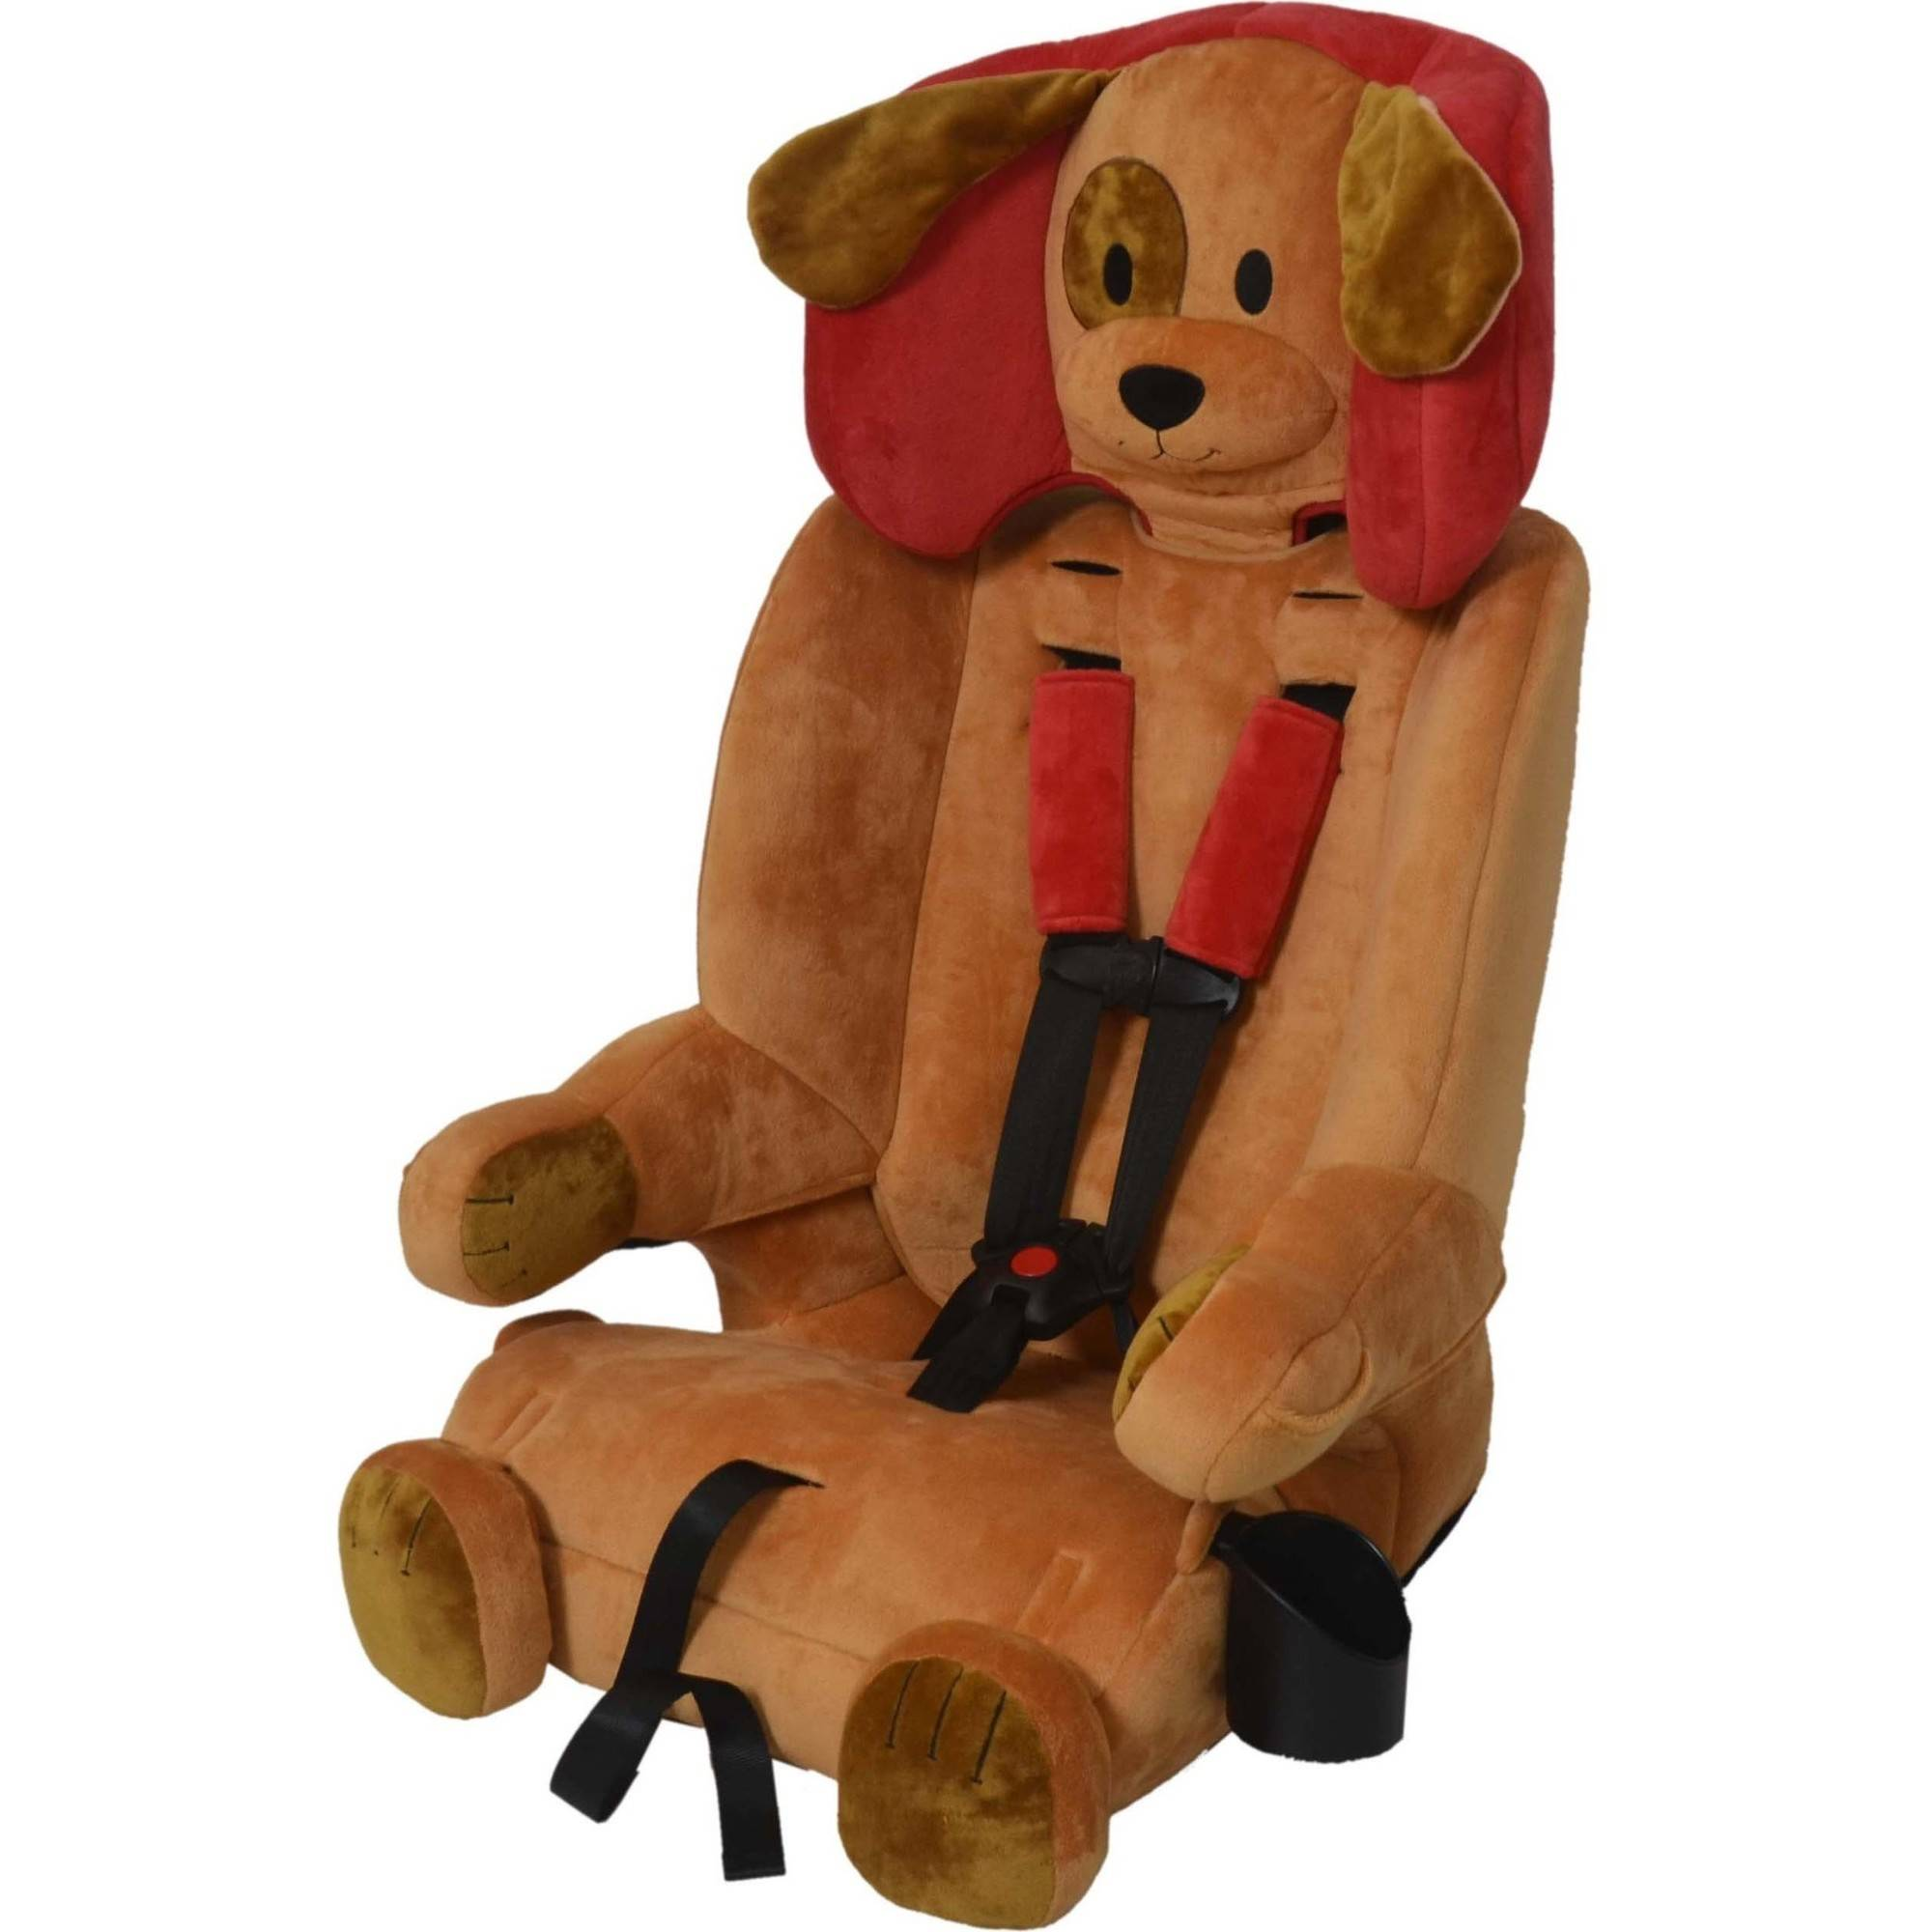 Sentry Baby Products Guardimals 3-in-1 Harness Booster Car Seat, Puppy